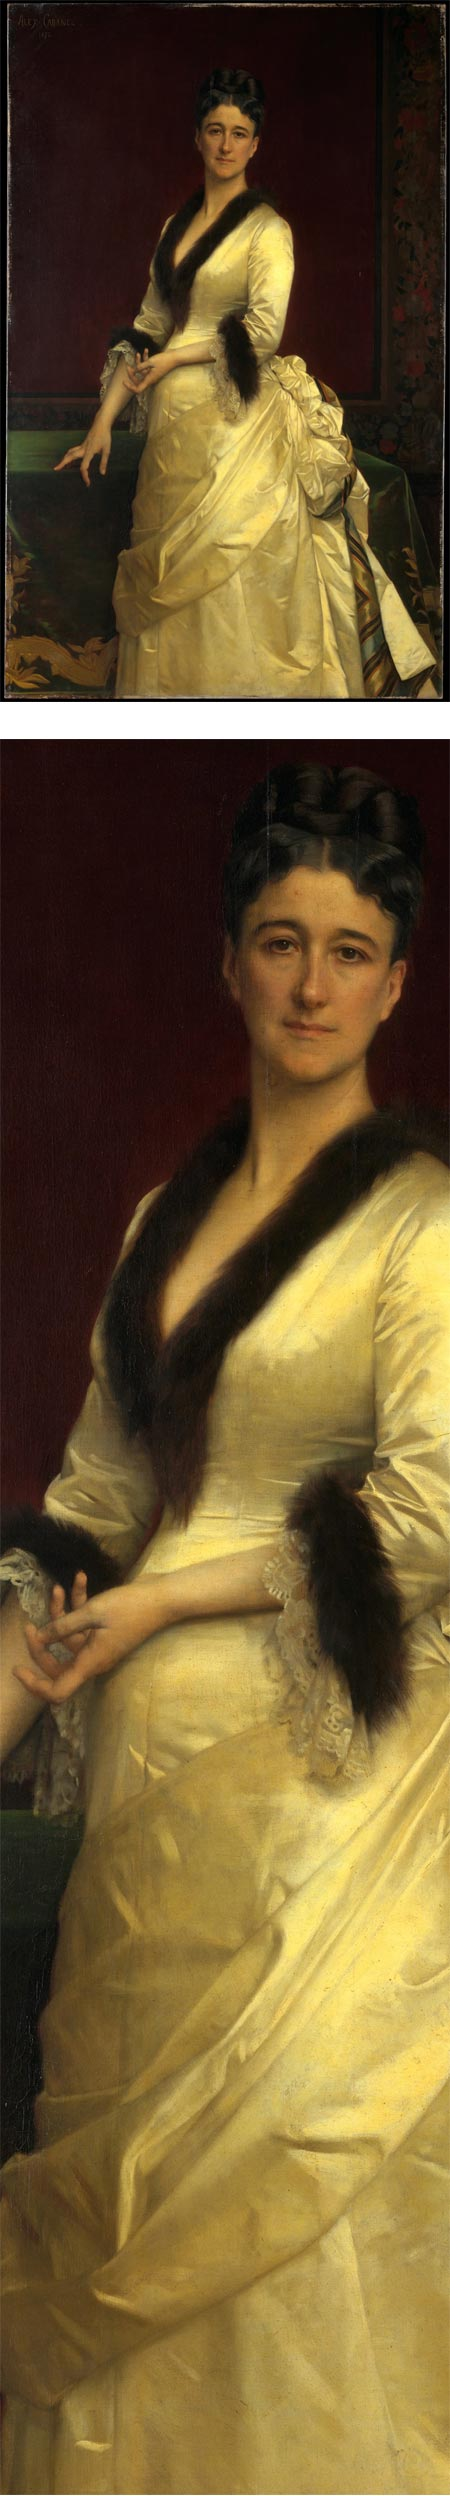 Catharine Lorillard Wolfe, by Alexandre Cabanel